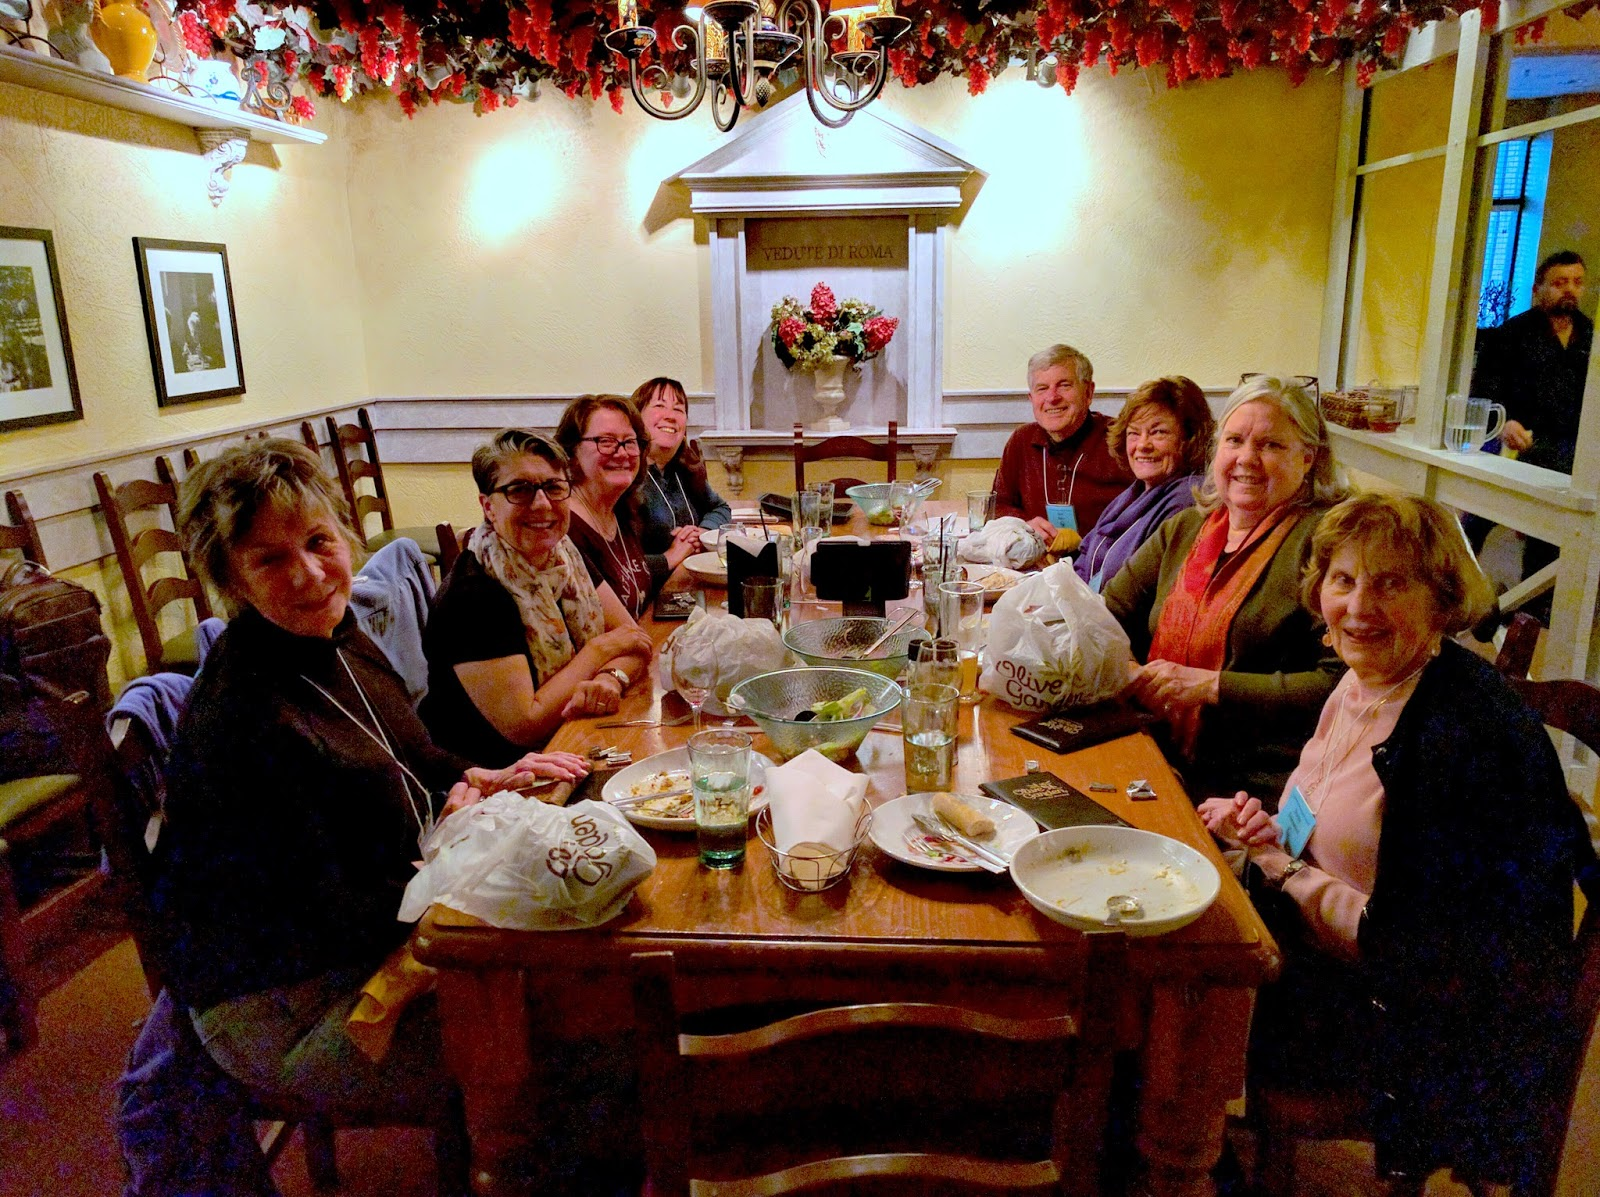 california genealogical society and library blog salt lake city - Olive Garden Salt Lake City